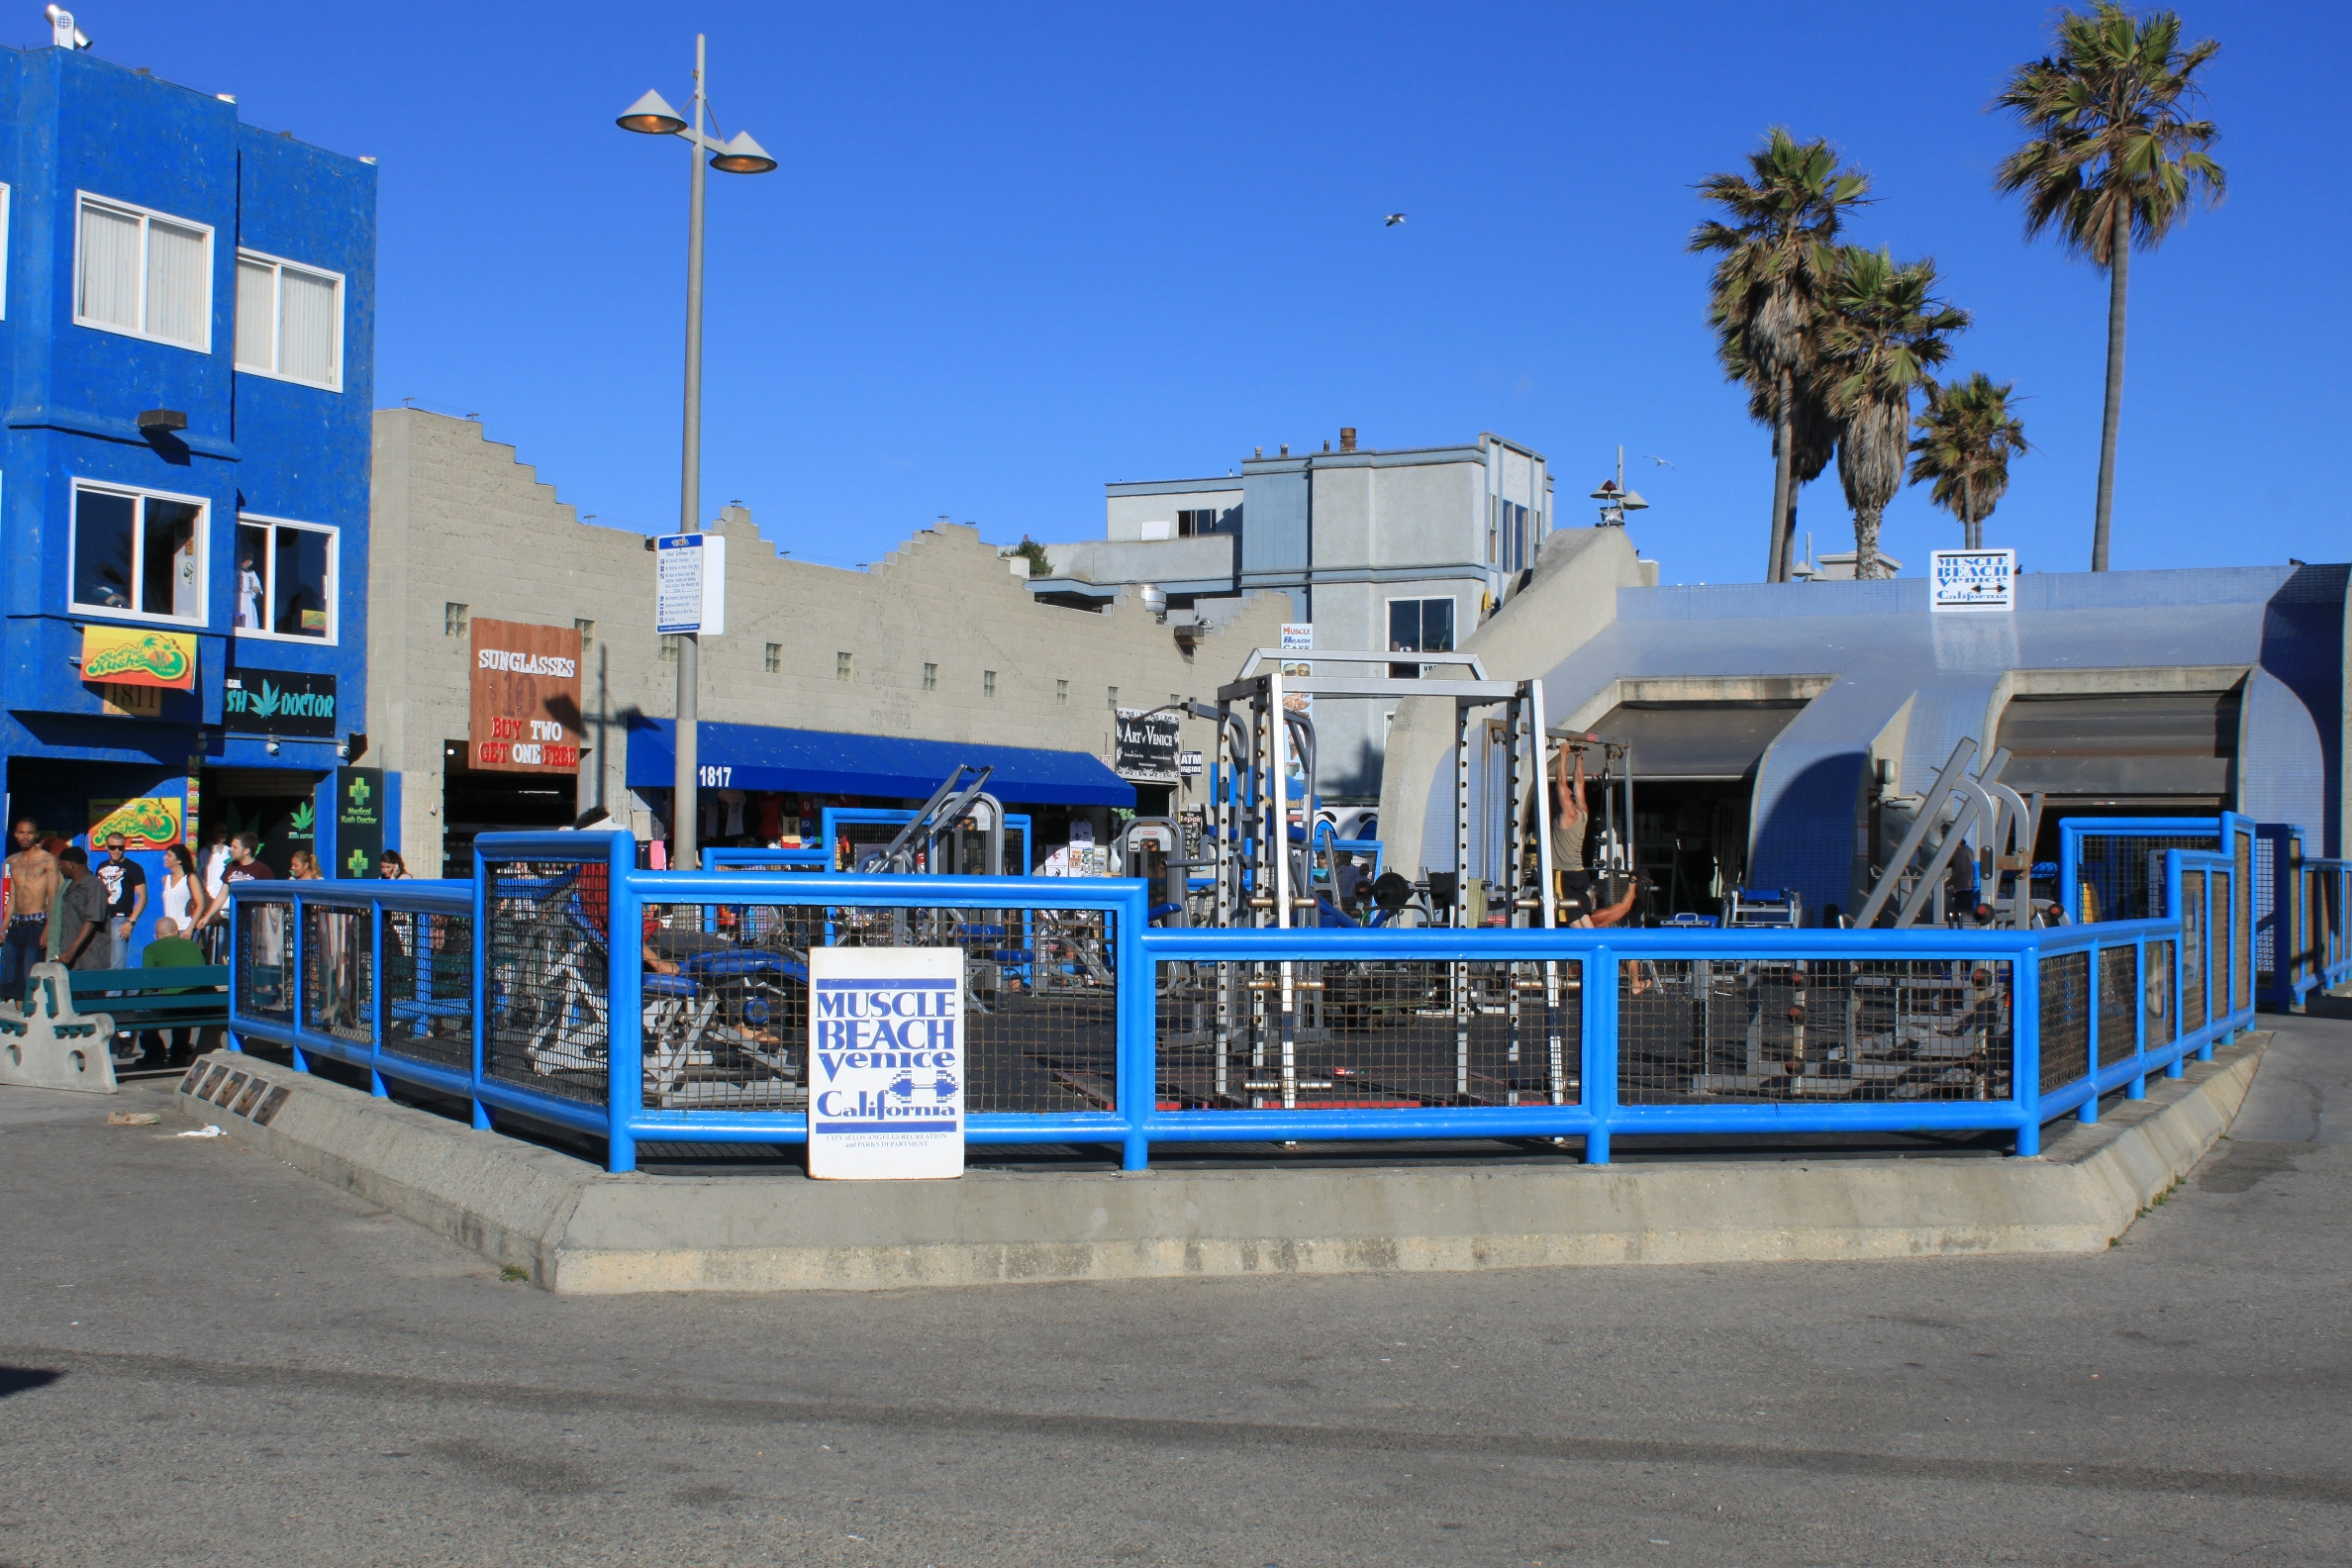 Gyms In South Redondo Beach